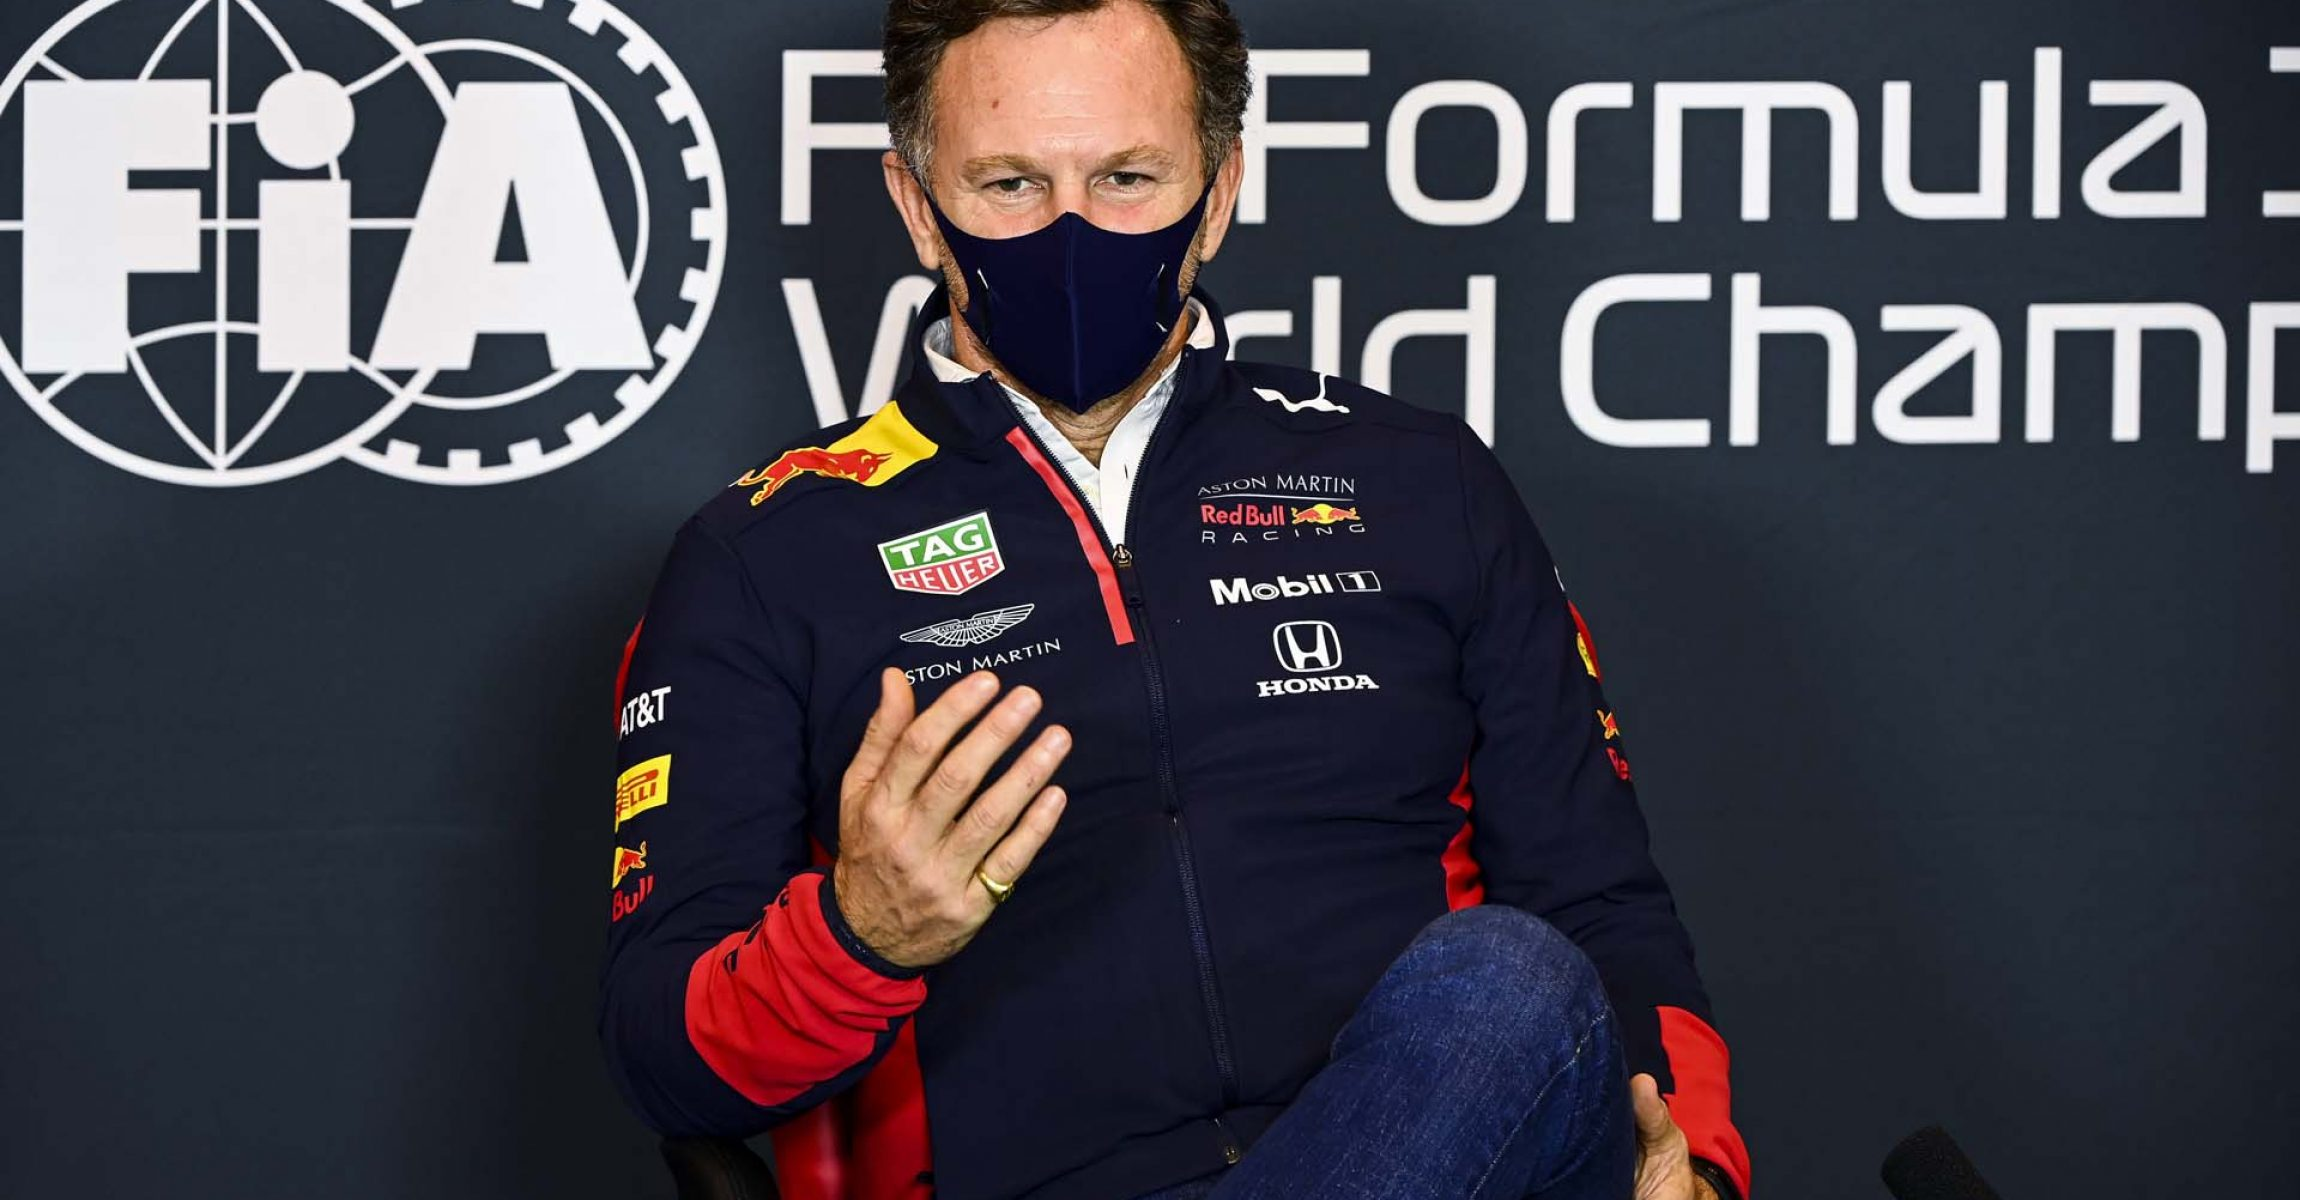 IMOLA, ITALY - OCTOBER 30: Red Bull Racing Team Principal Christian Horner talks in the Drivers Press Conference during previews ahead of the F1 Grand Prix of Emilia Romagna at Autodromo Enzo e Dino Ferrari on October 30, 2020 in Imola, Italy. (Photo by Mark Sutton - Pool/Getty Images)